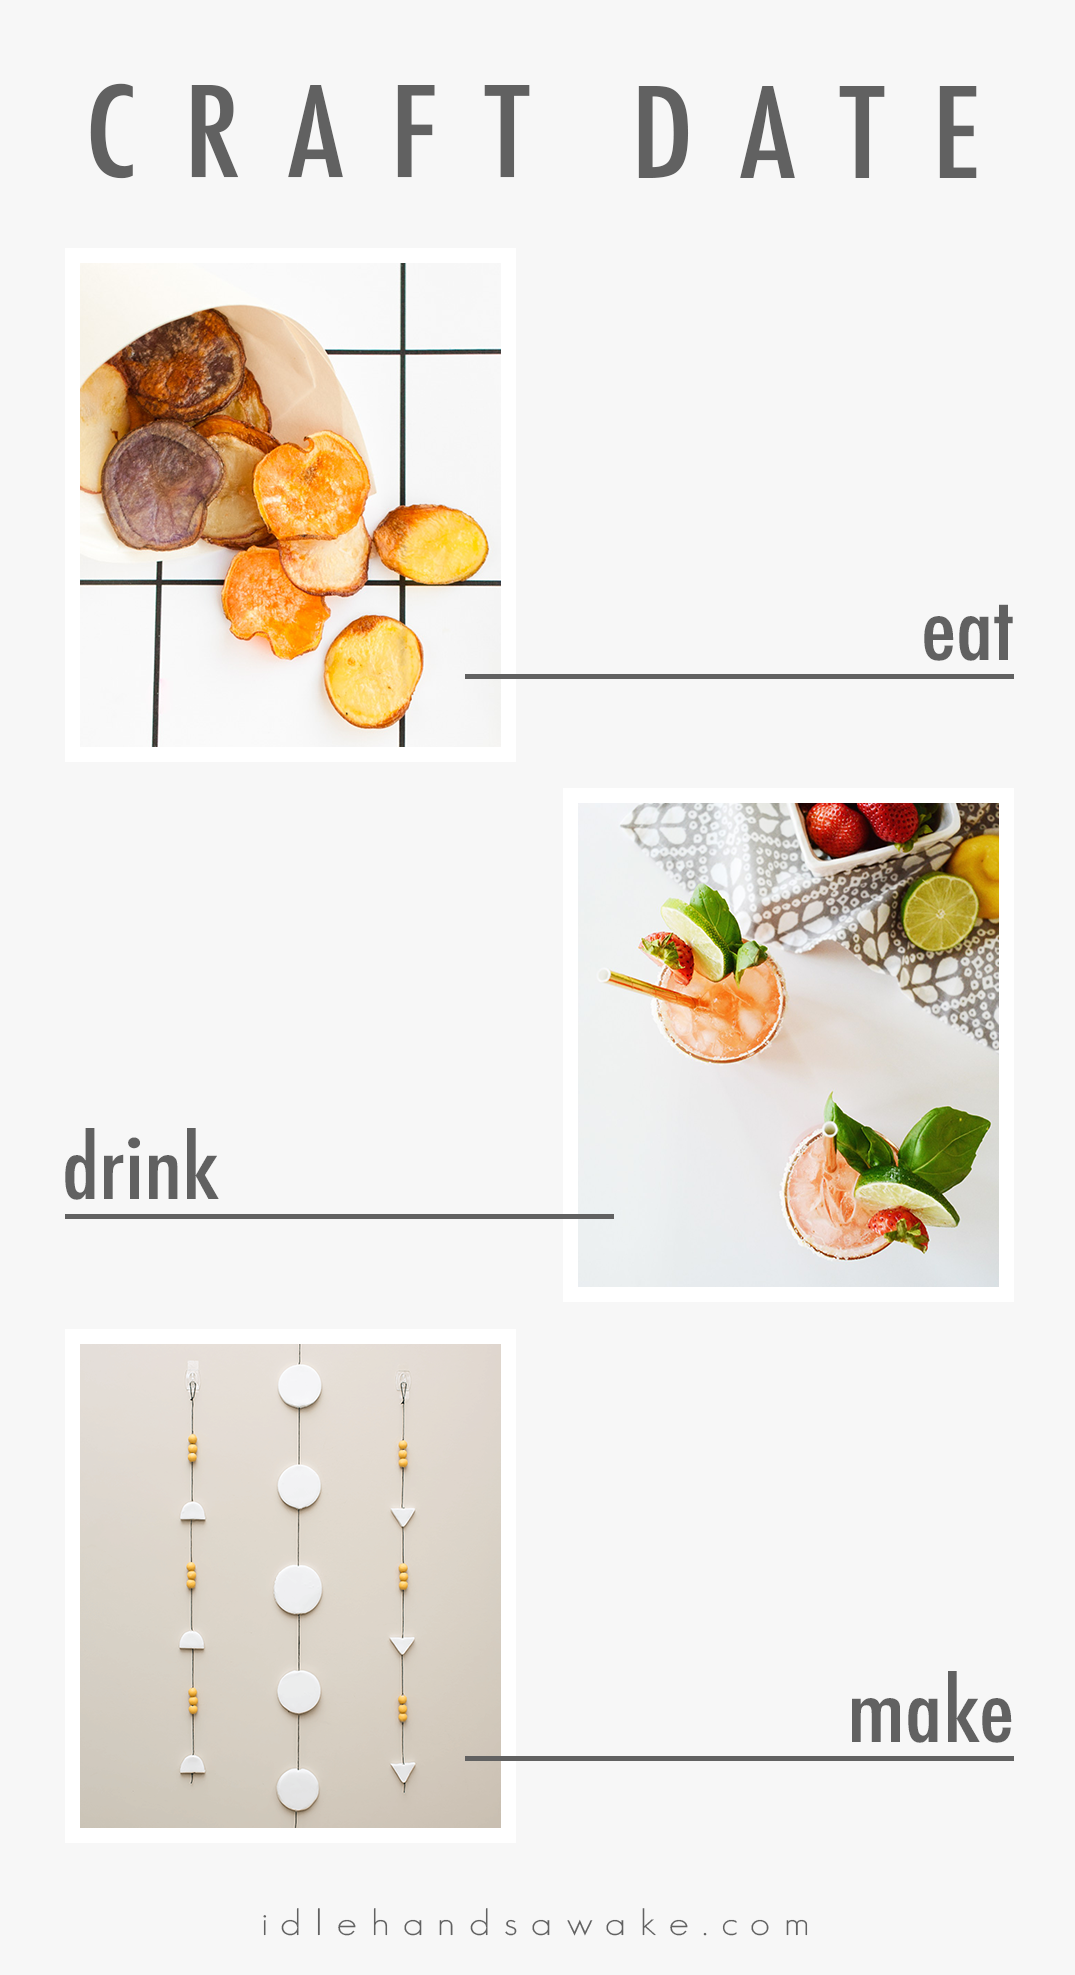 Grab your friends and have a craft date! Make these simple snacks, drinks, and crafts together for a fun weekend activity.